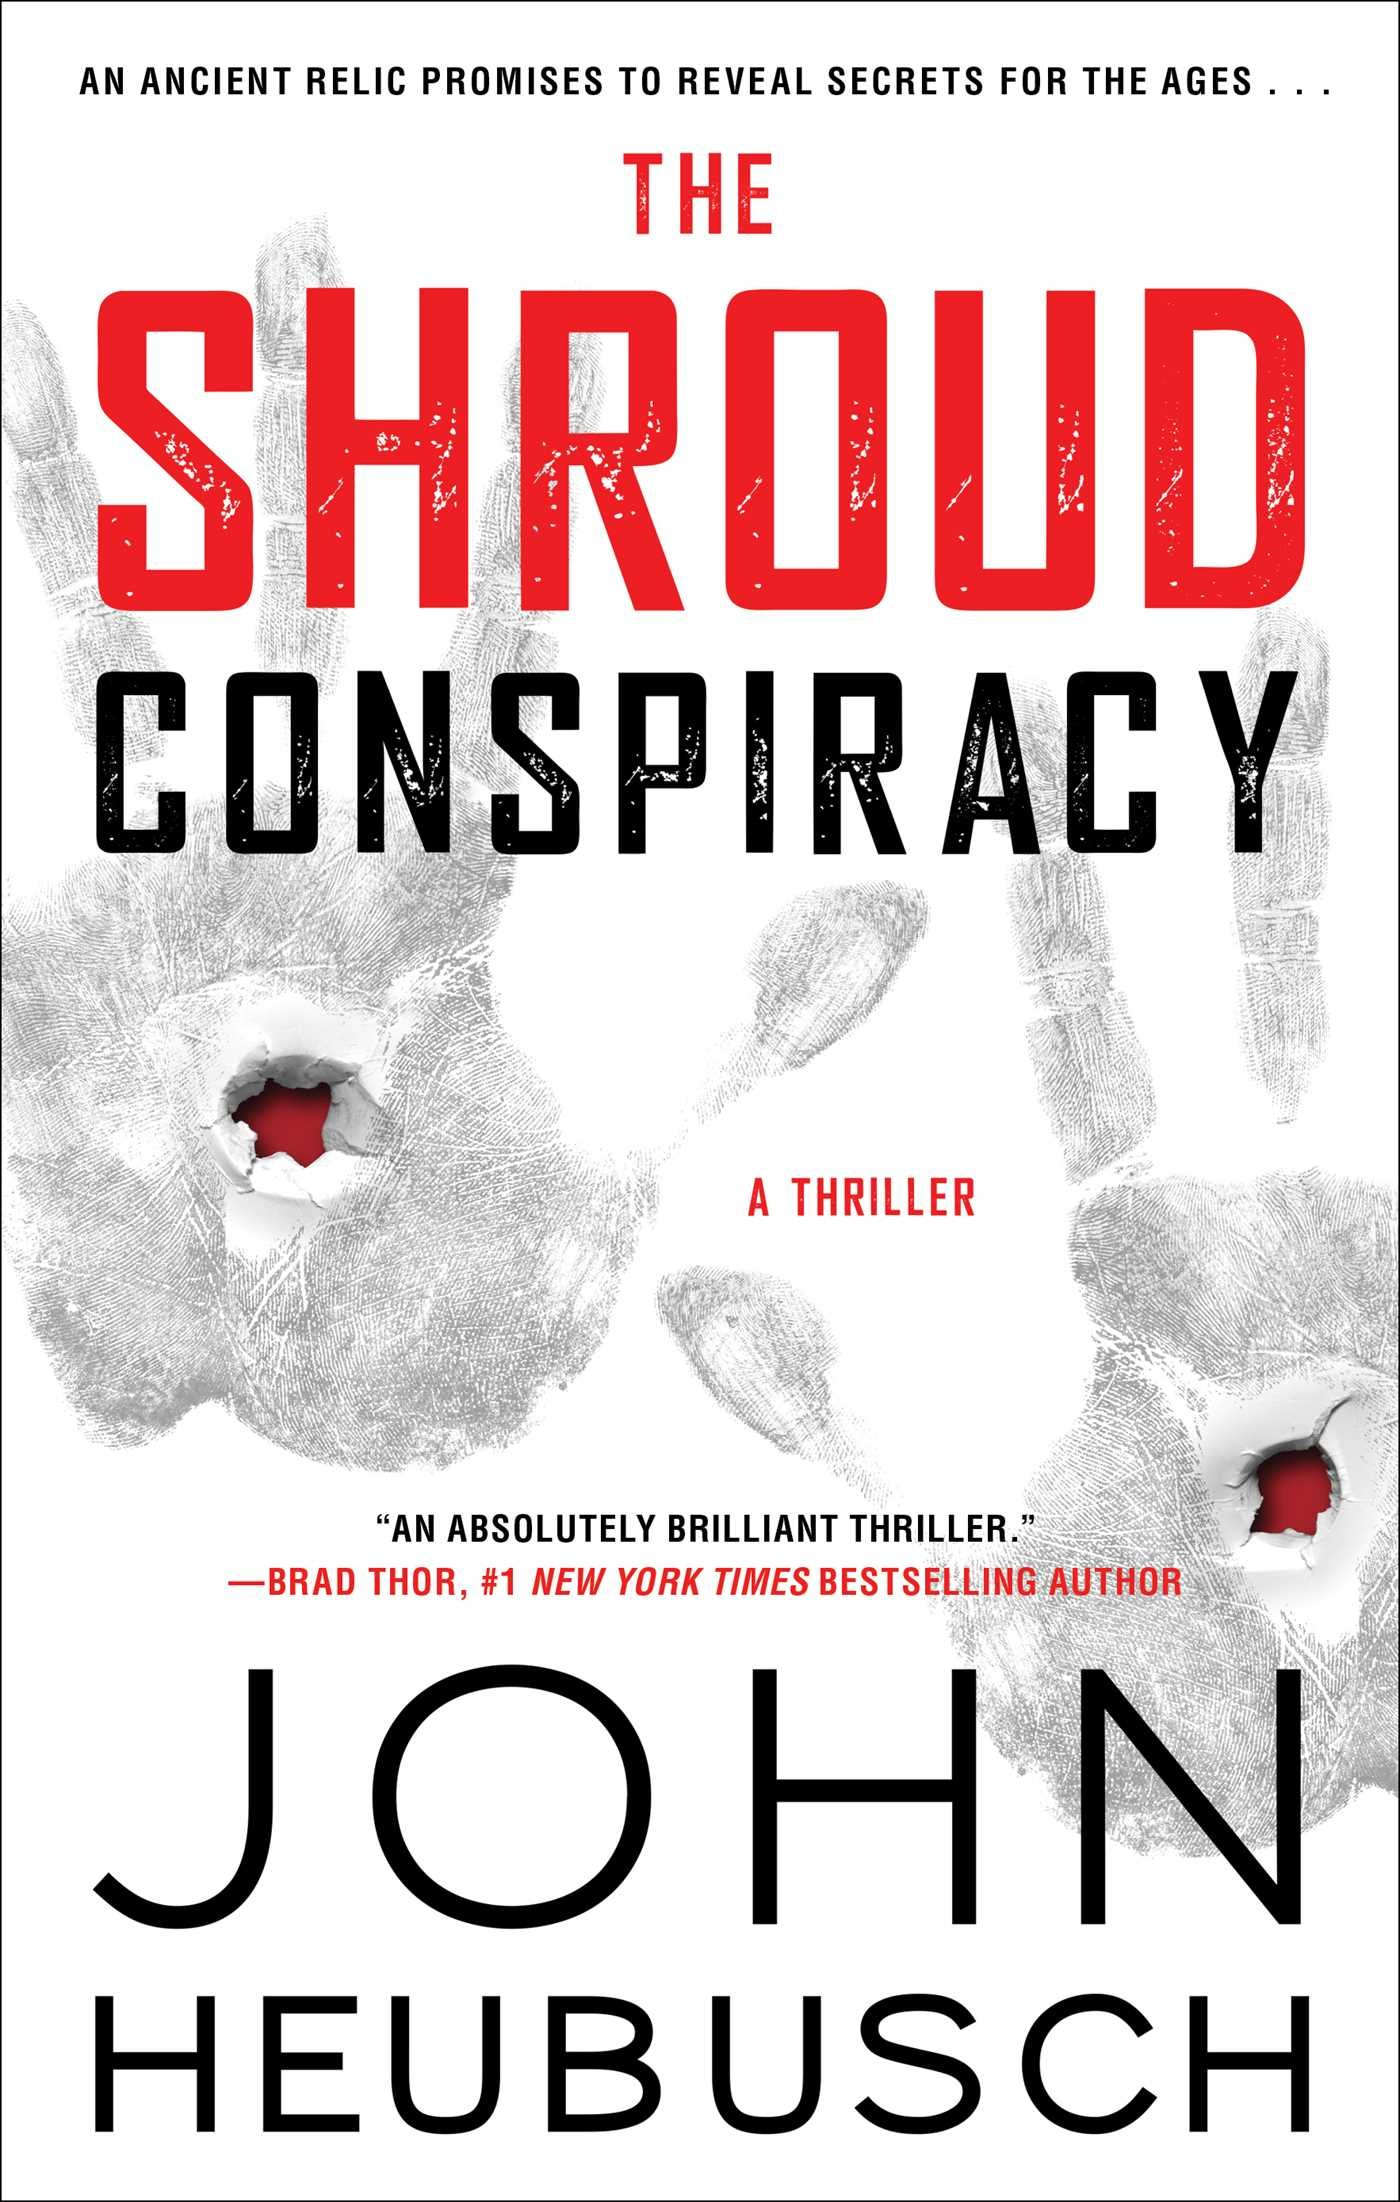 Amazon: The Shroud Conspiracy: A Thriller (the Shroud Series)  (9781501155703): John Heubusch: Books